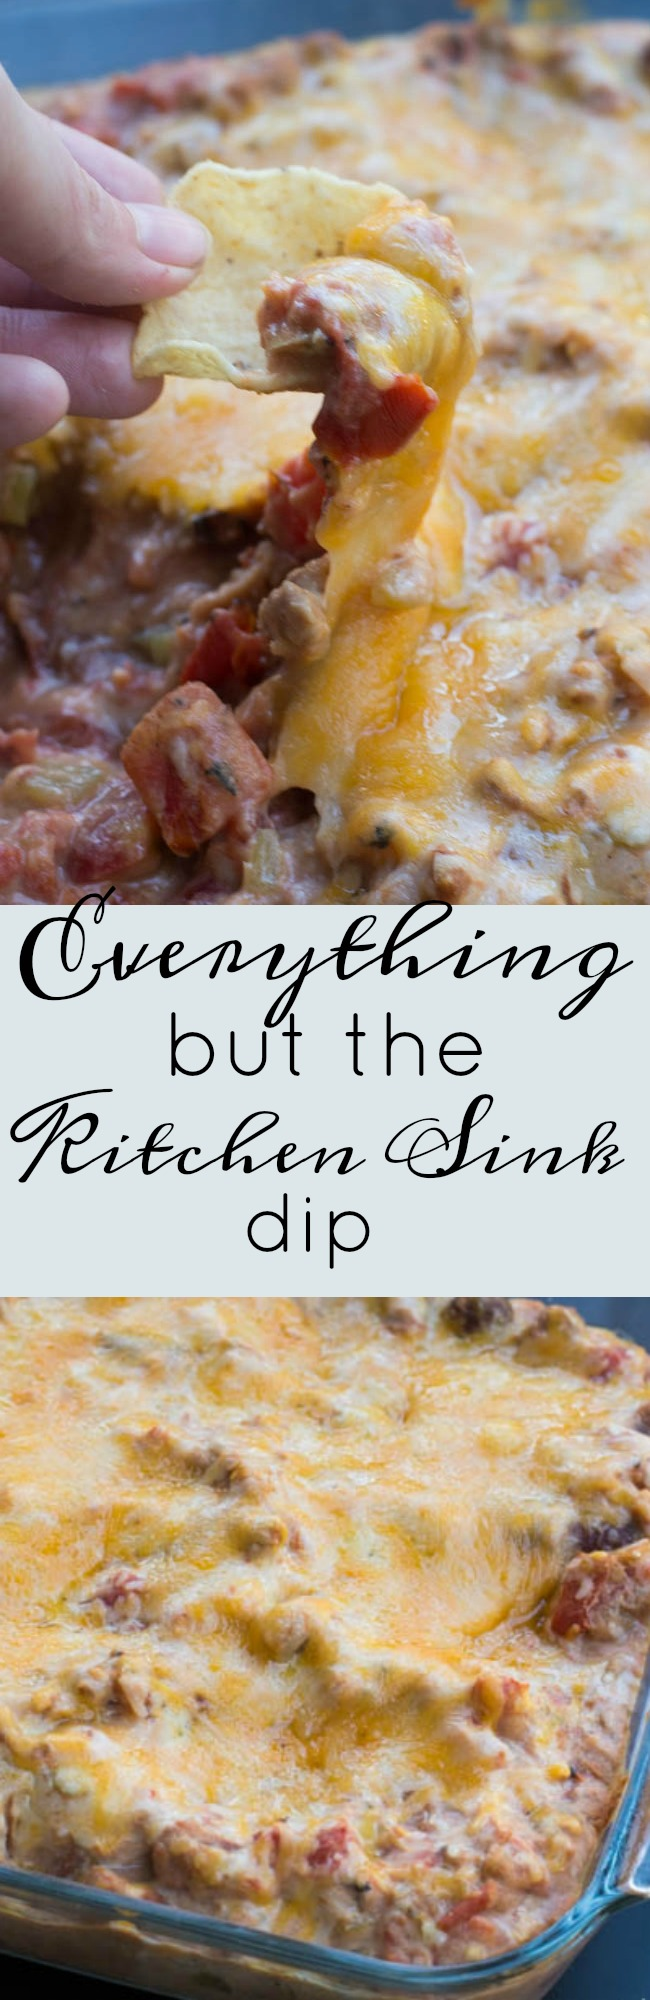 This is a cheesy bean dip recipe that is a delicious appetizer for parties and get togethers!